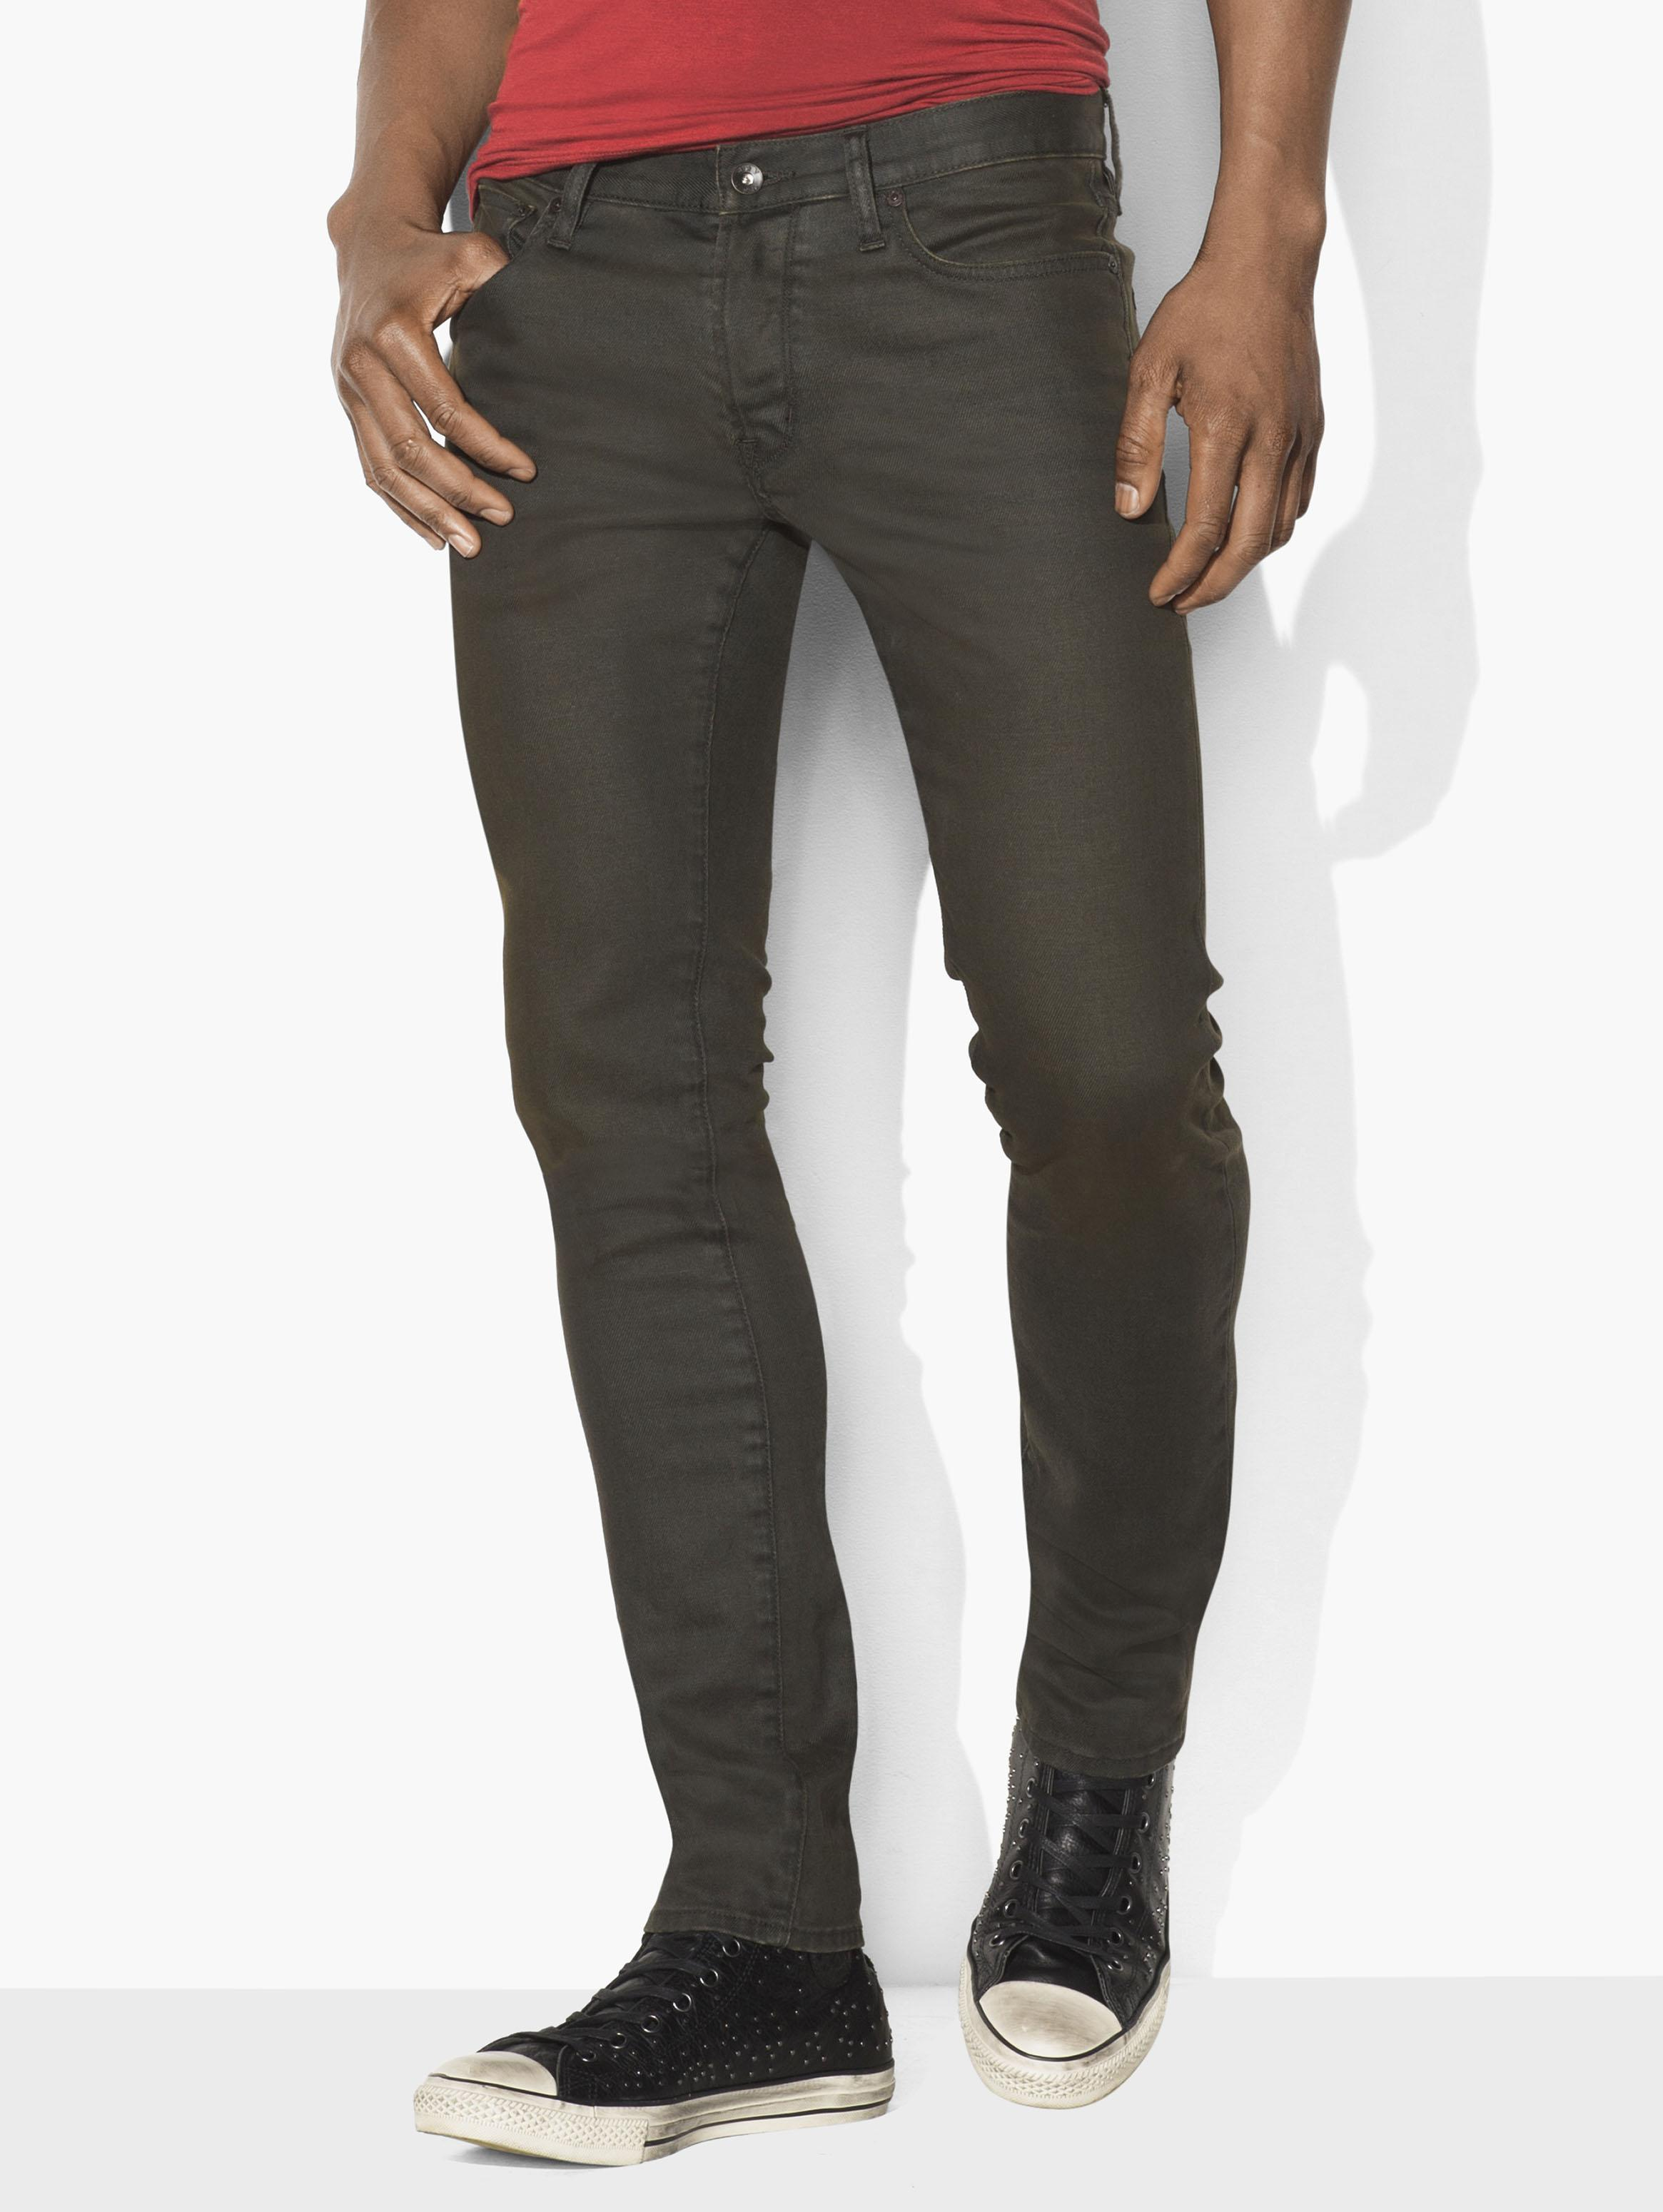 Wight Coated Stretch Jean